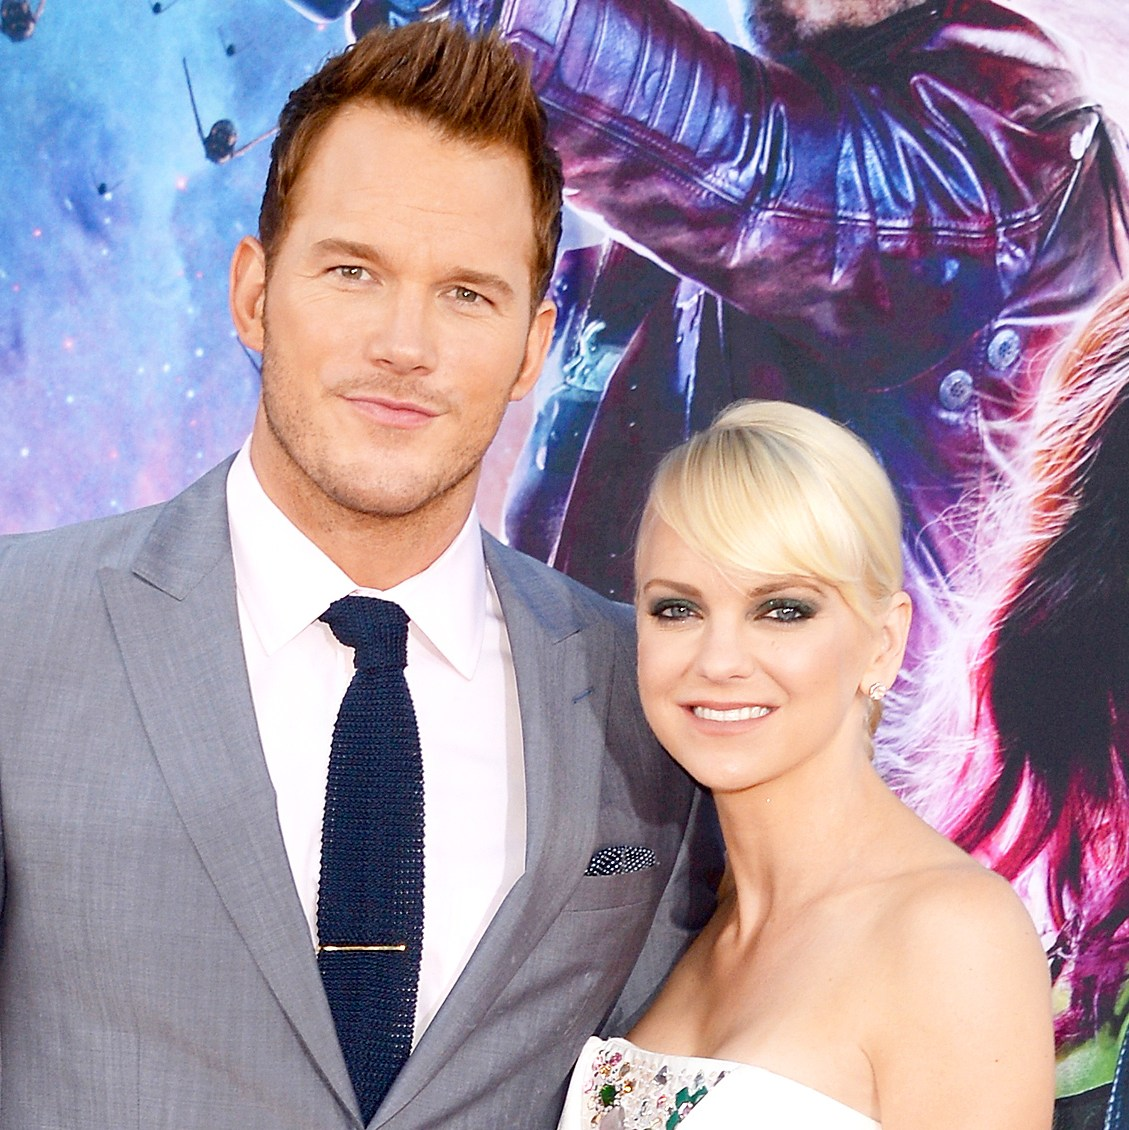 Chris Pratt and Anna Faris attend the premiere of Marvel's 'Guardians Of The Galaxy' at the Dolby Theatre on July 21, 2014 in Hollywood, California.